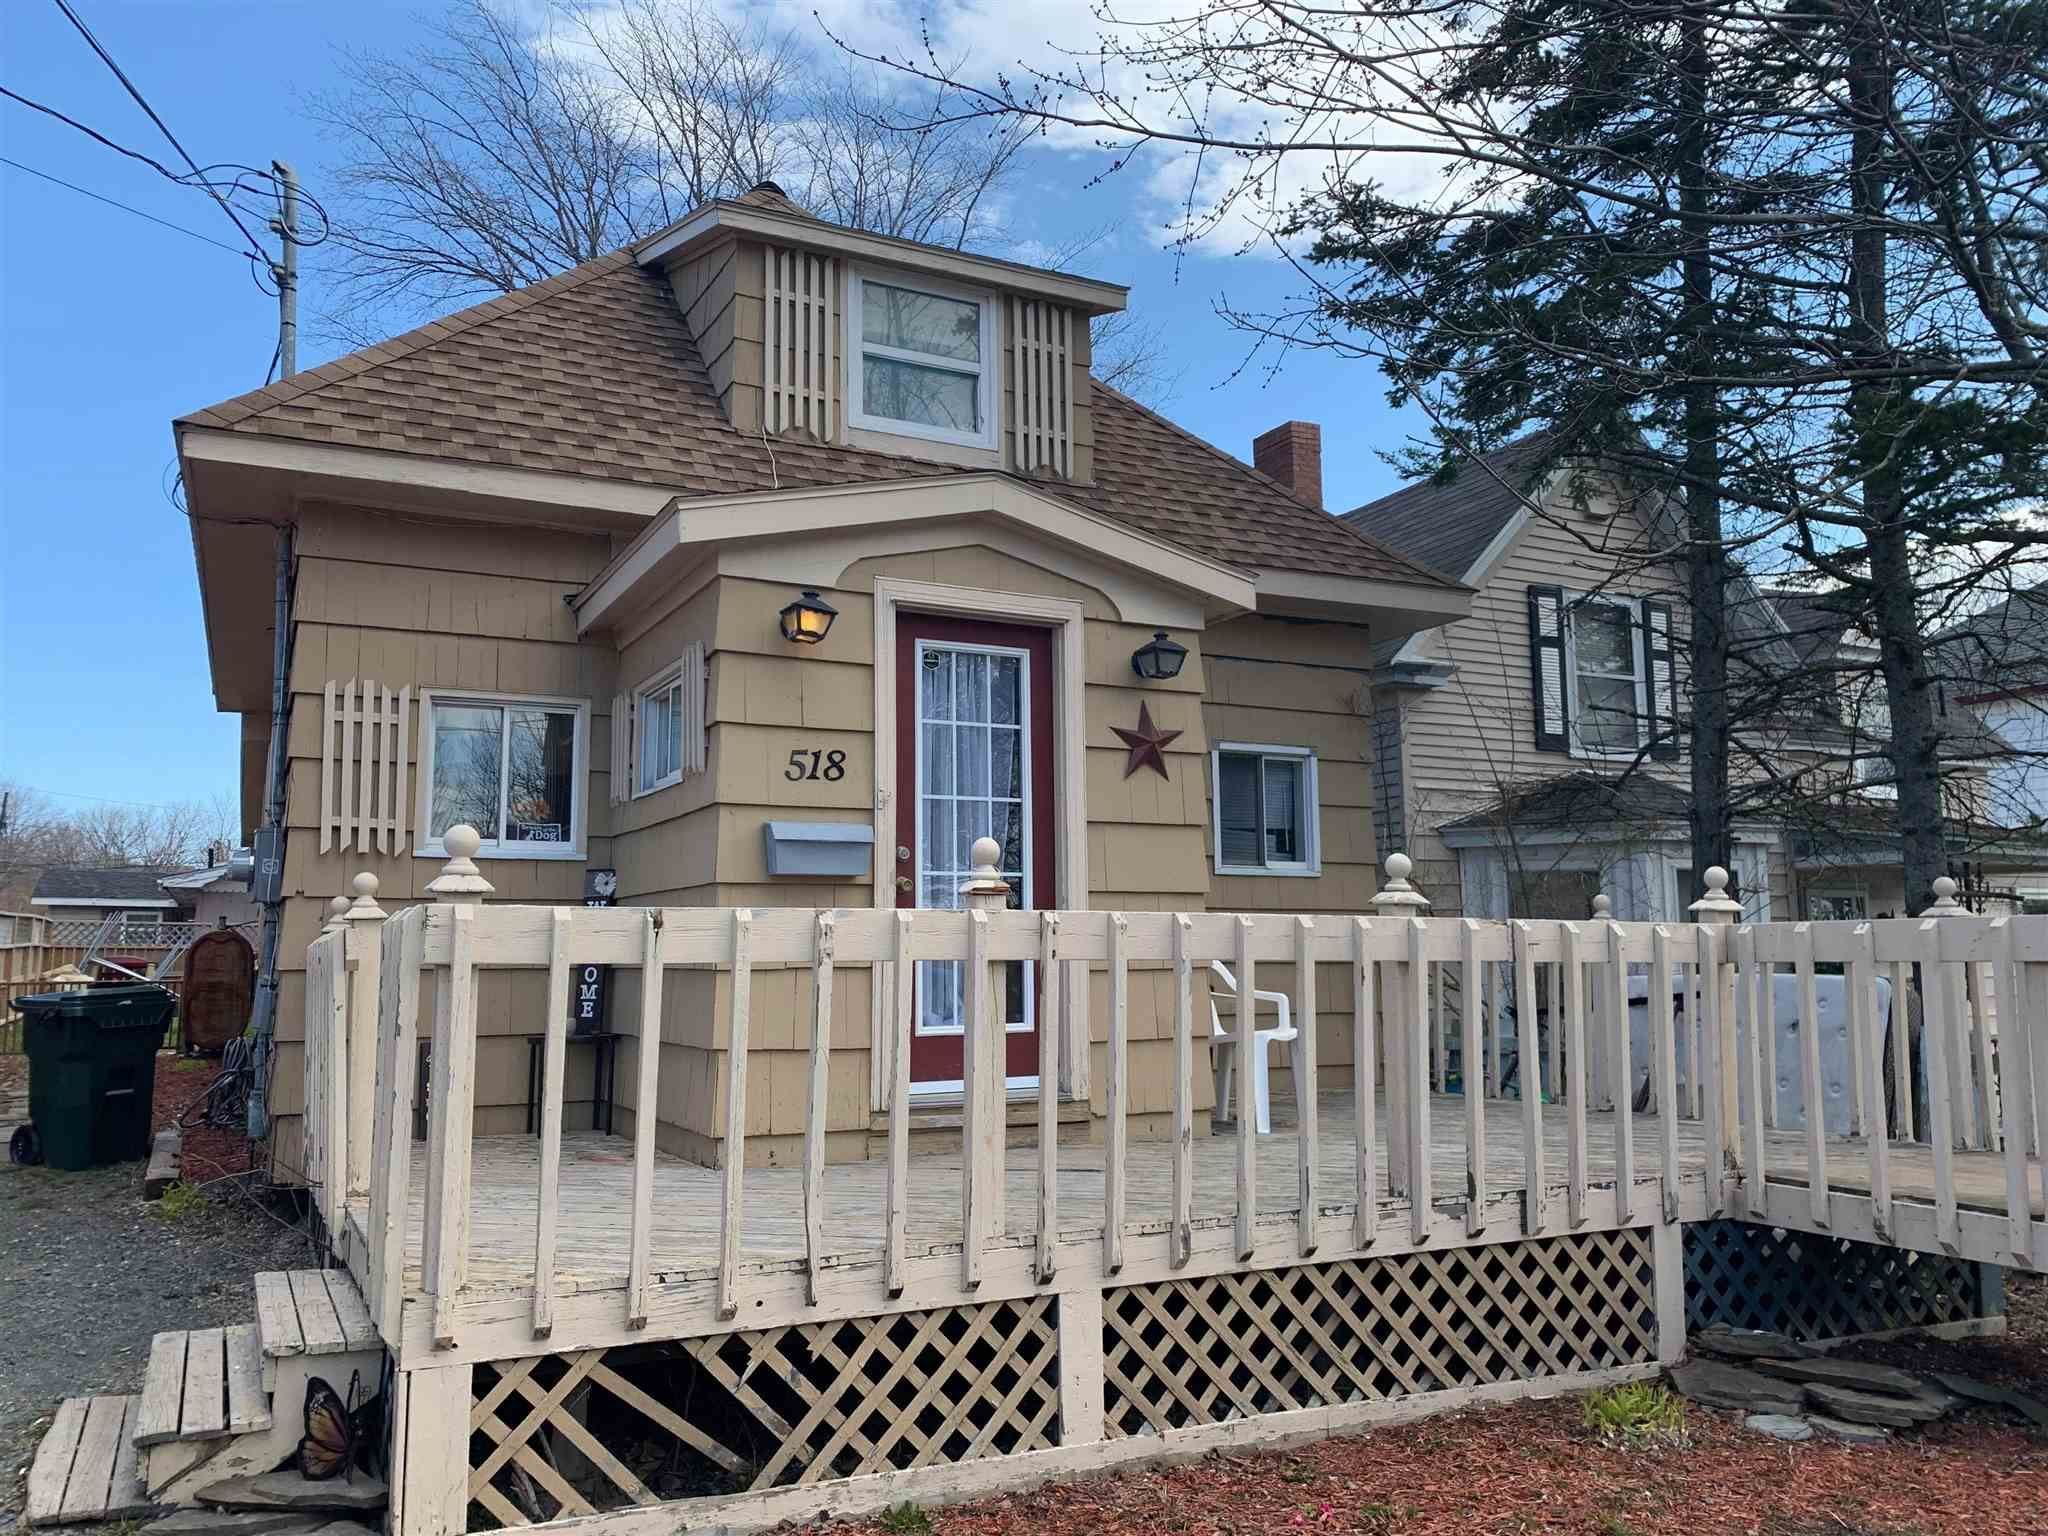 Main Photo: 518 Main Street in Sydney Mines: 207-C. B. County Residential for sale (Cape Breton)  : MLS®# 202109677